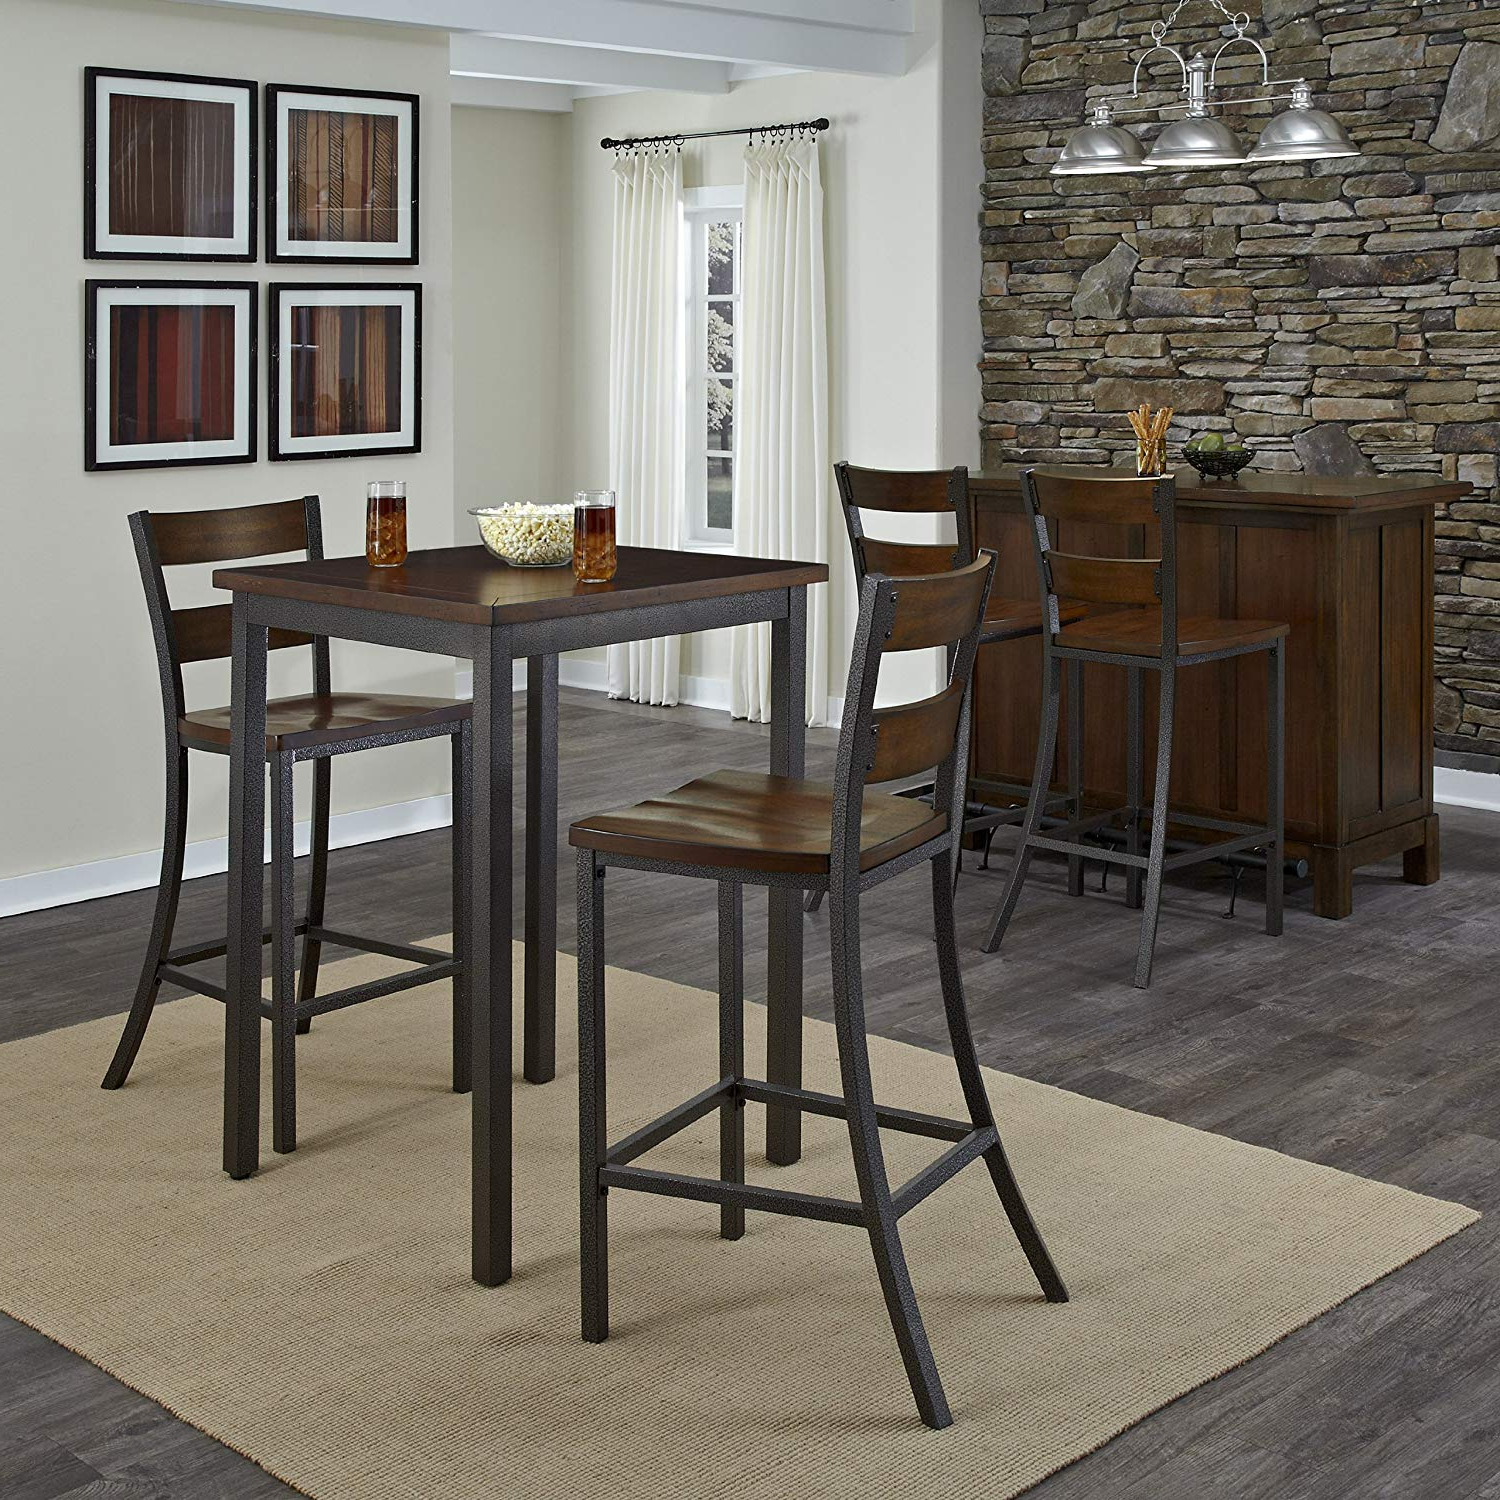 Preferred Partin 3 Piece Dining Sets Pertaining To Home Styles 5411 359 Cabin Creek 3 Piece Pub/bistro Table And Chairs Set (View 10 of 20)